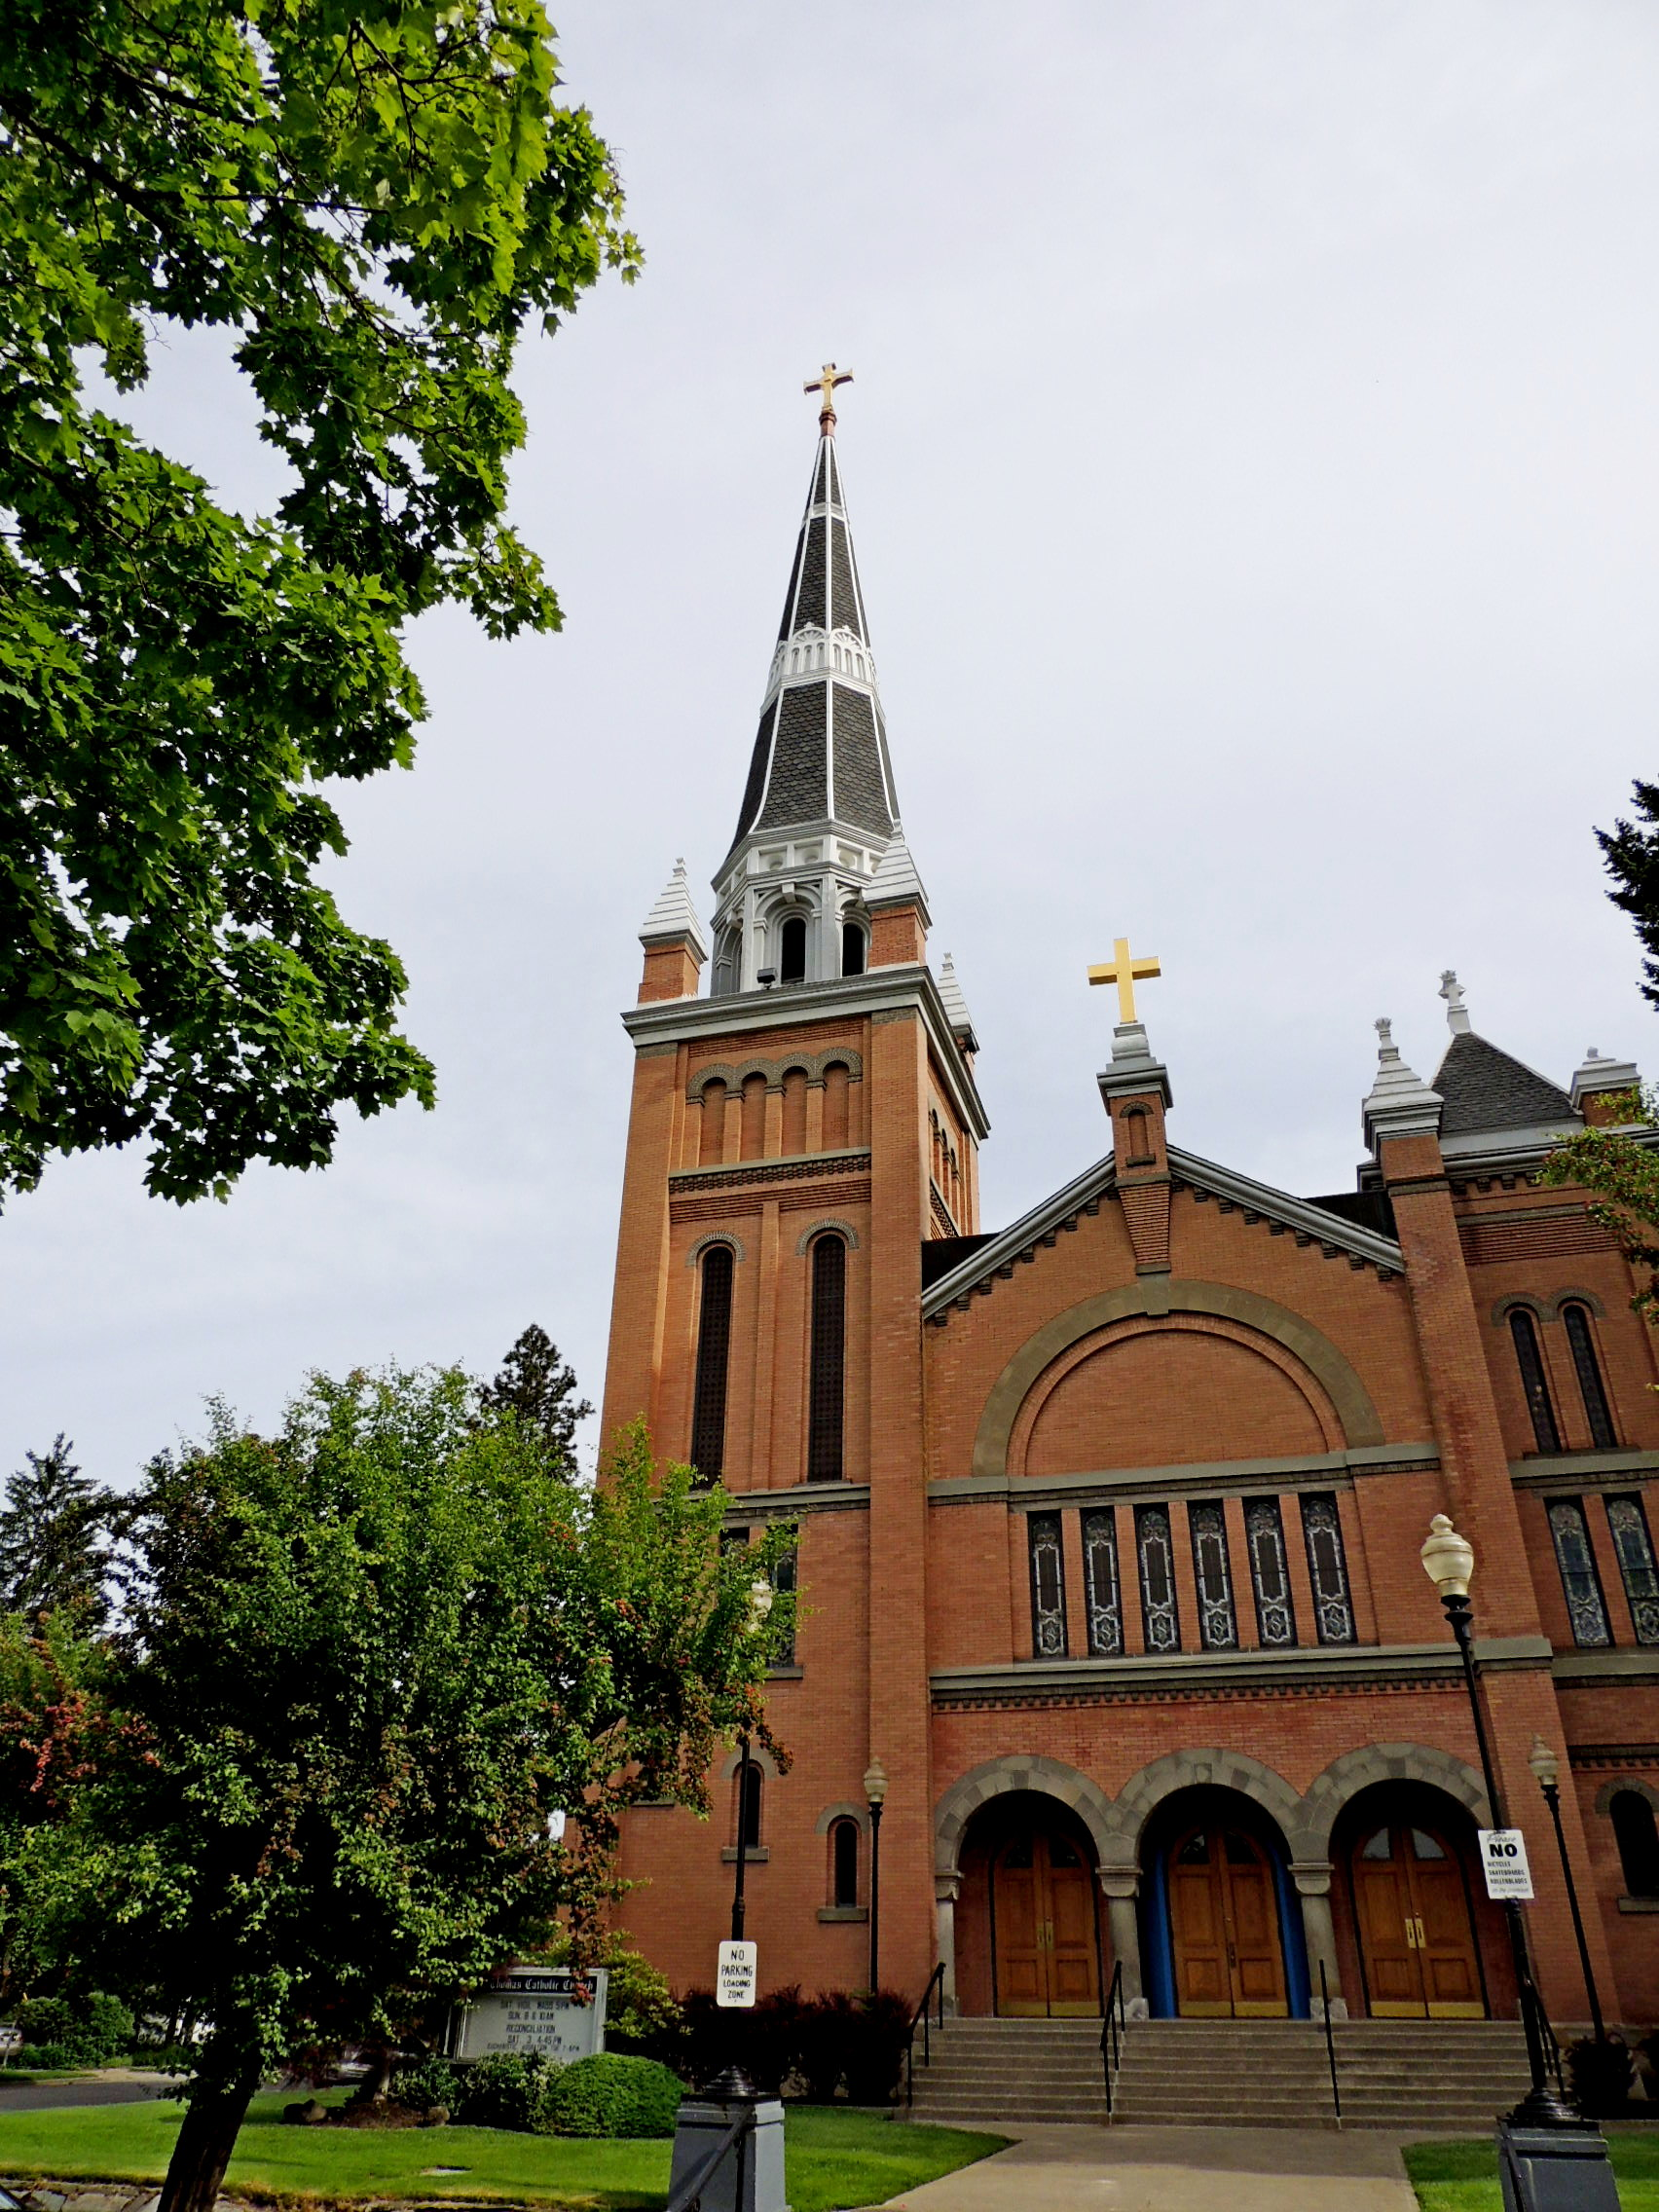 coeur d alene catholic singles Faith focused dating and relationships browse profiles & photos of idaho  diocese of boise hispanic catholic singles and join catholicmatchcom, the  clear.